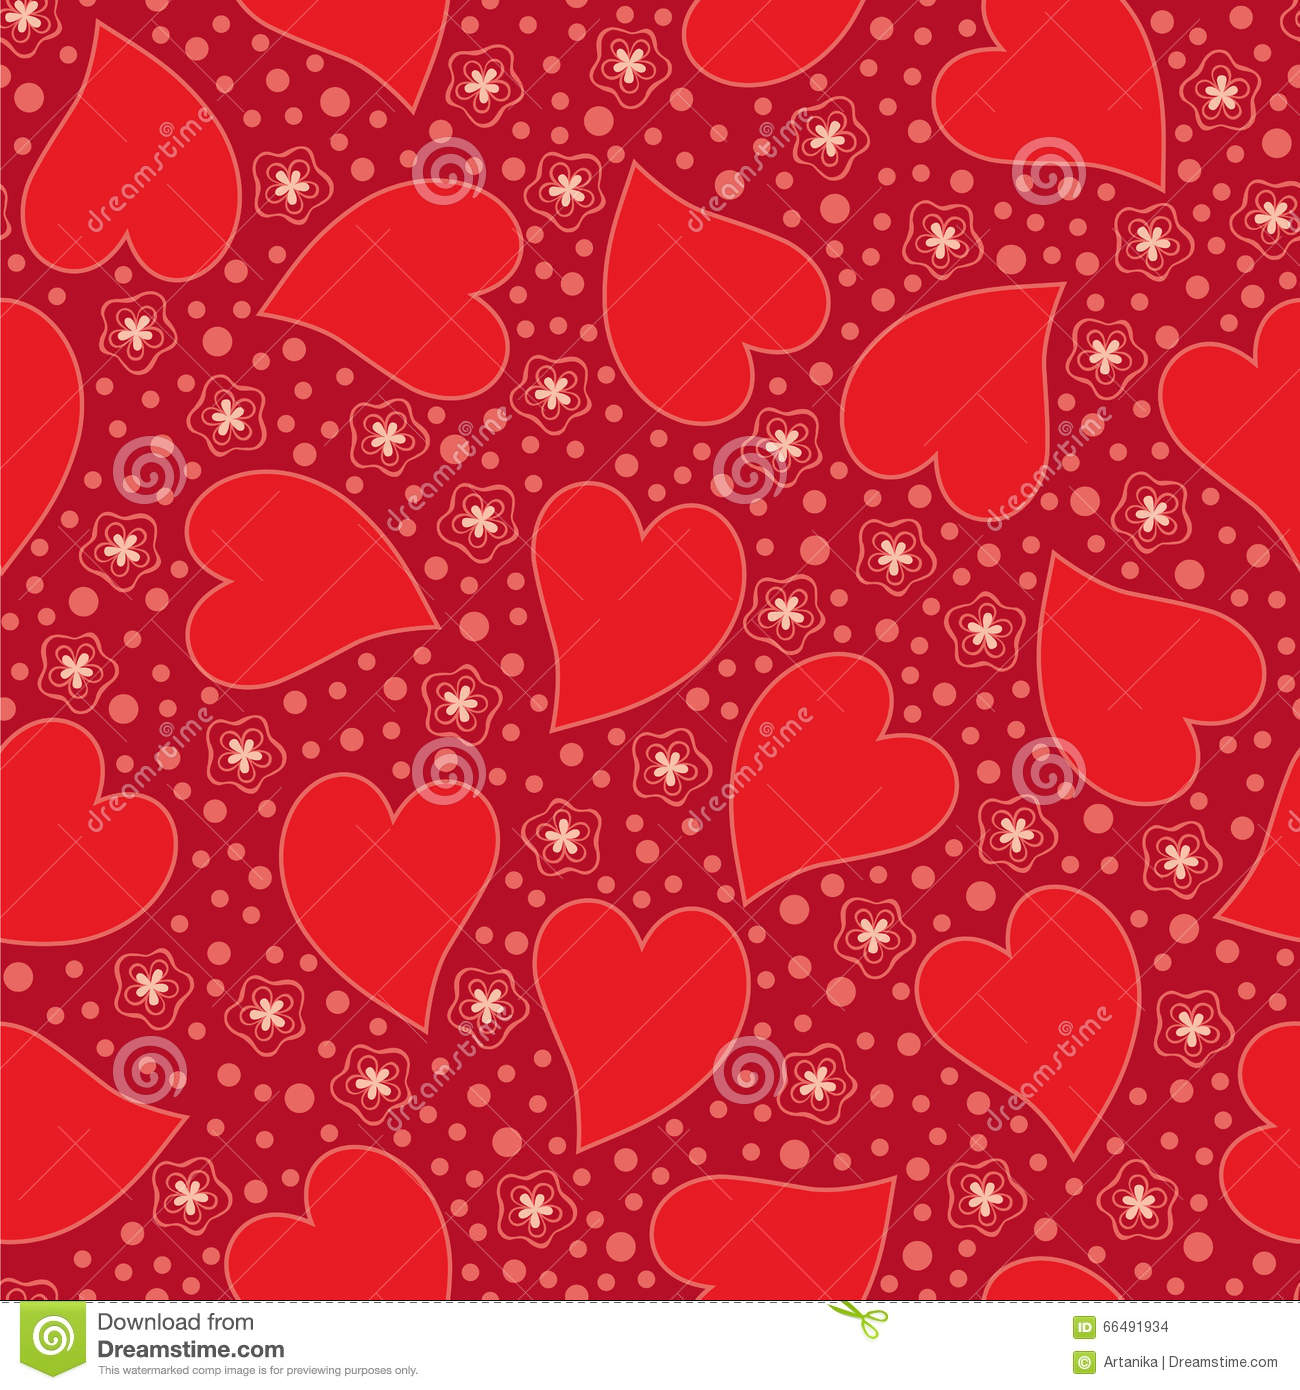 Valentine Seamless background with hearts